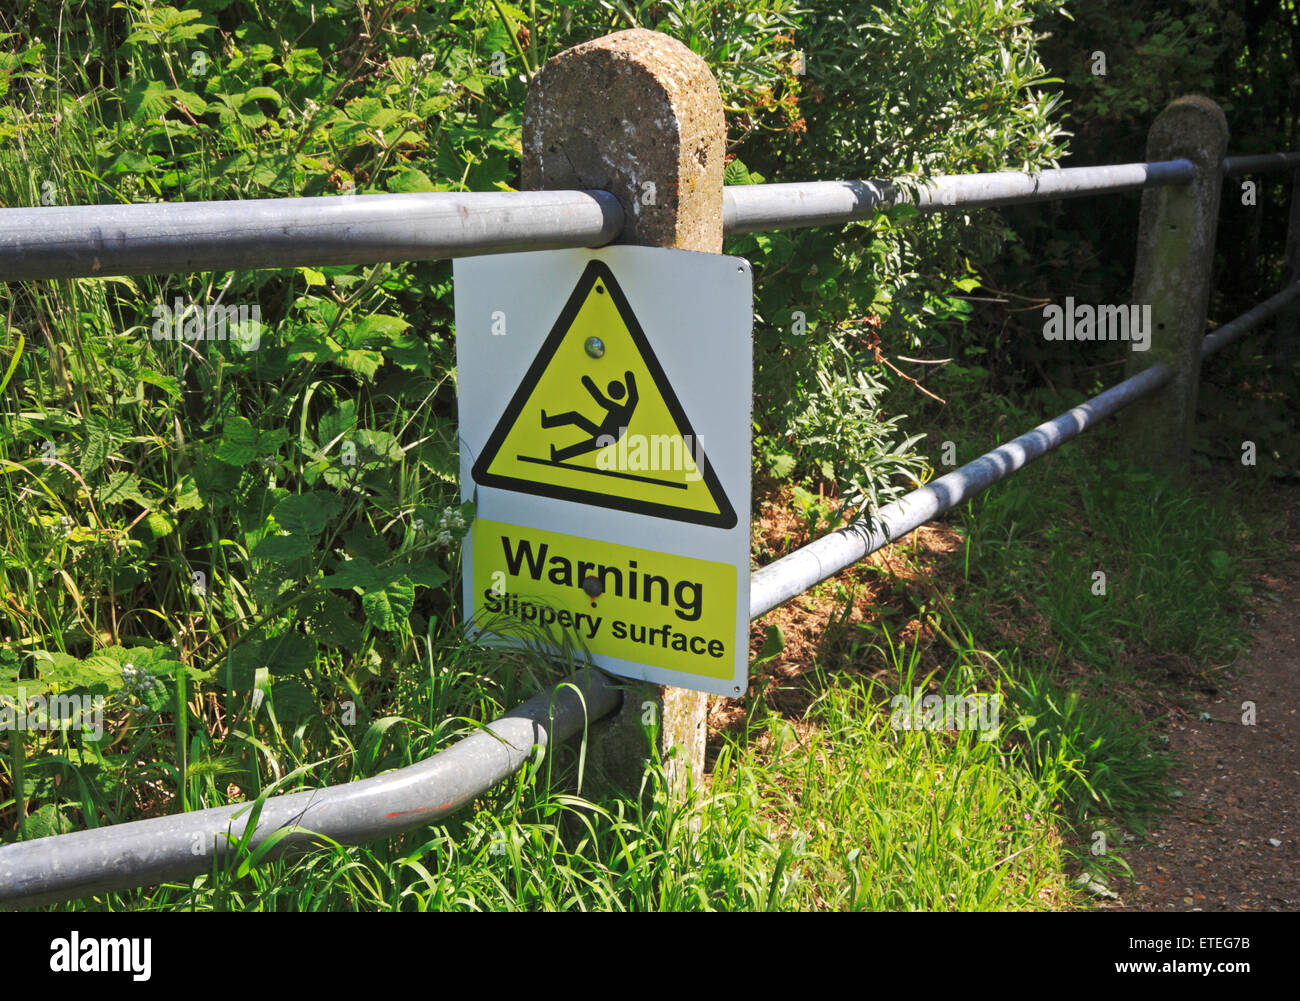 A slippery surface warning sign on a steep path to the beach at Cromer, Norfolk, England, United Kingdom. - Stock Image